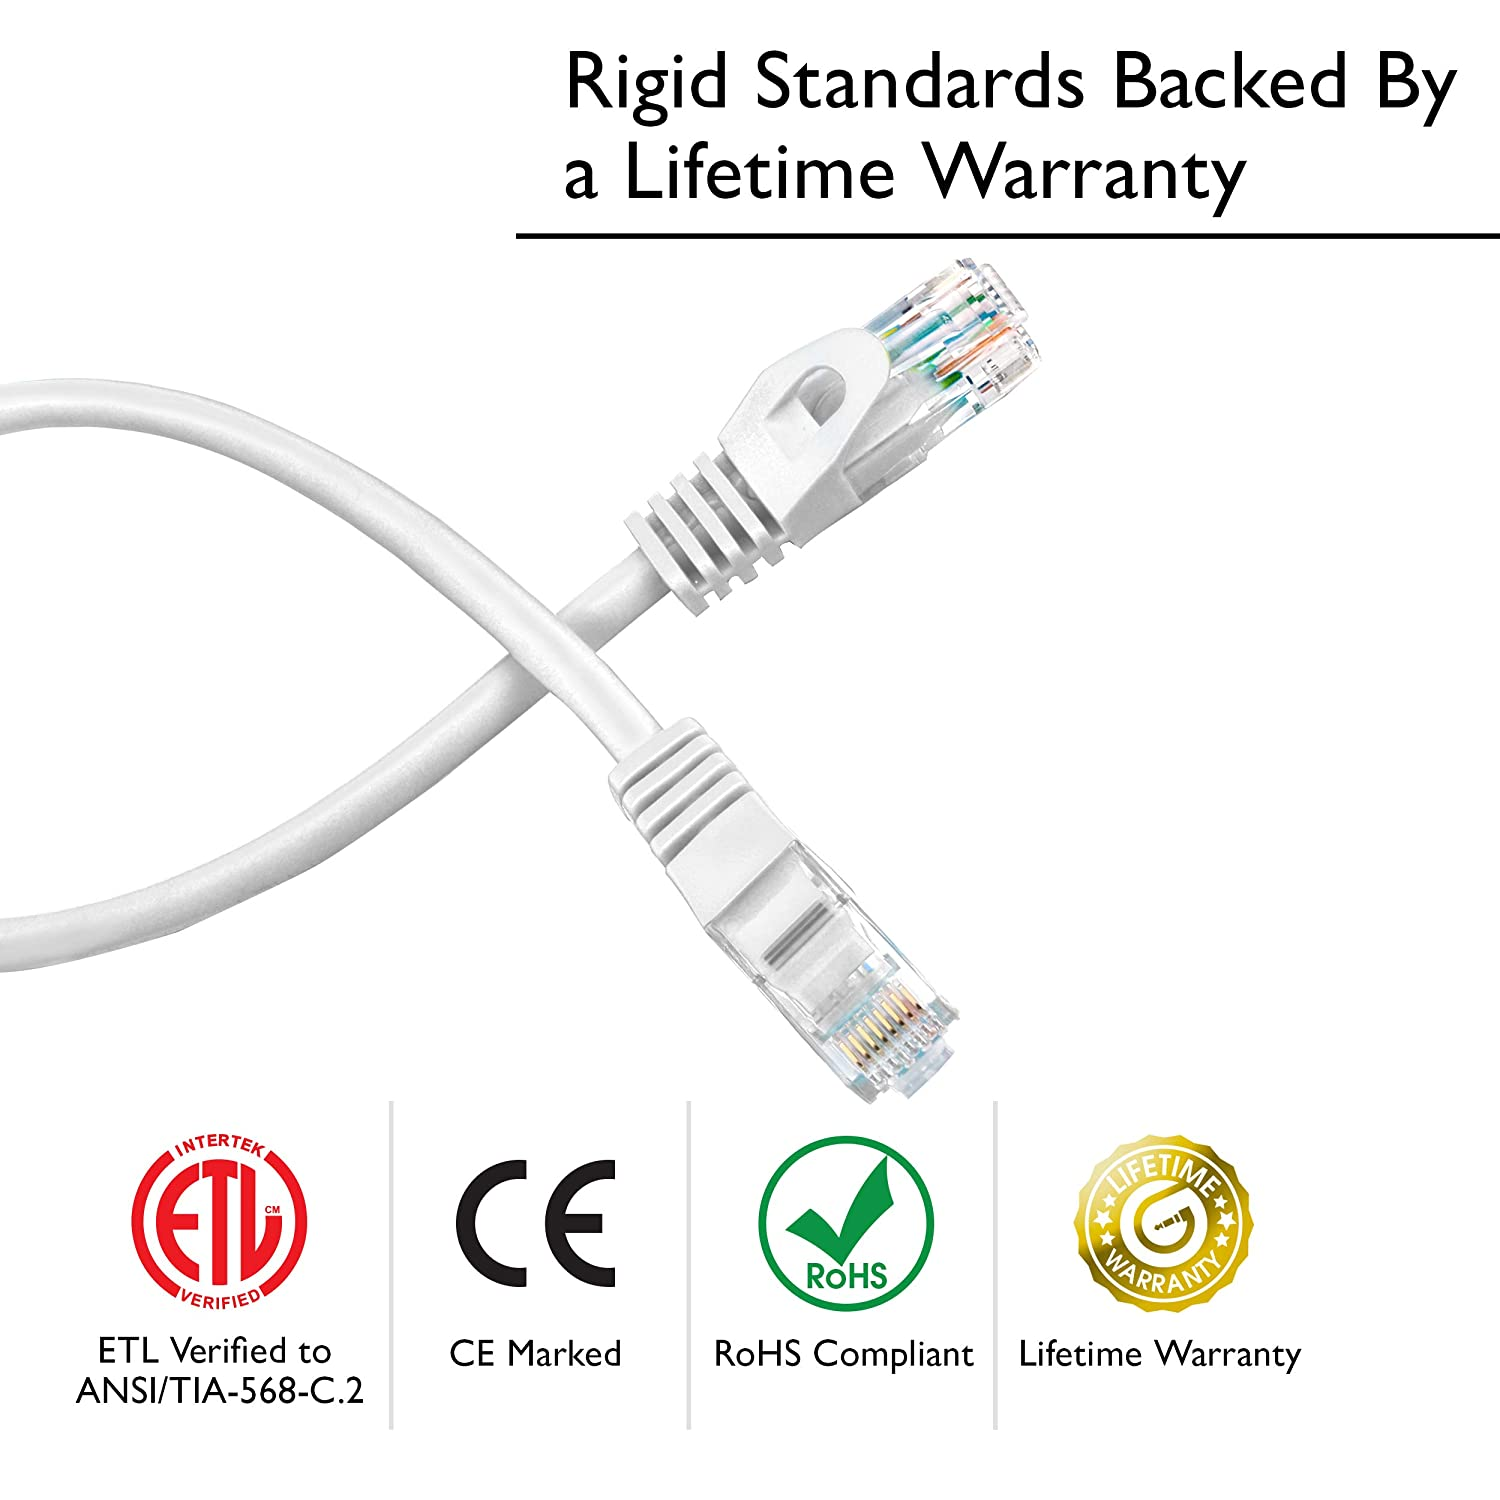 Preimum Series White GearIT 20-Pack Cat6 Patch Cable 5 Feet Cat 6 Ethernet Cable Snagless Flexible Soft Tab